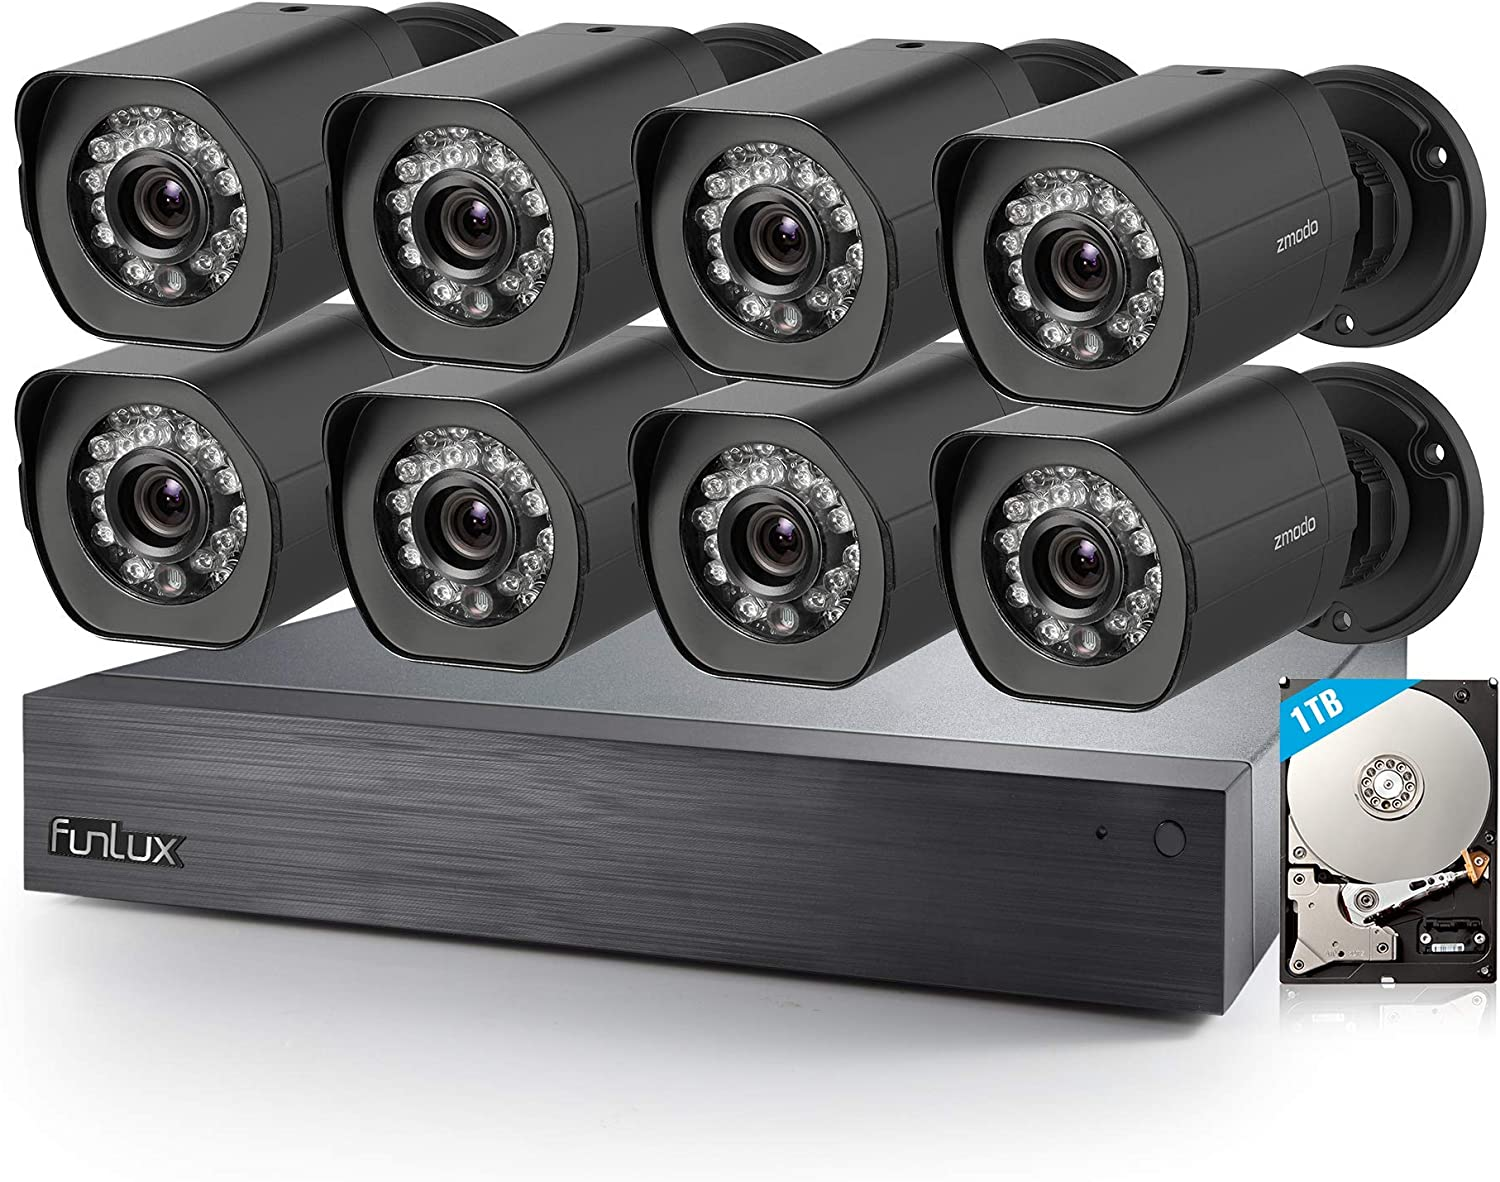 Zmodo Home Security Camera System, 16 Channel 720p HD NVR 8 Bullet Indoor/Outdoor sPoE Security Cameras, Surveillance CCTV, Night Vision, Motion Detection, 1TB Hard Drive